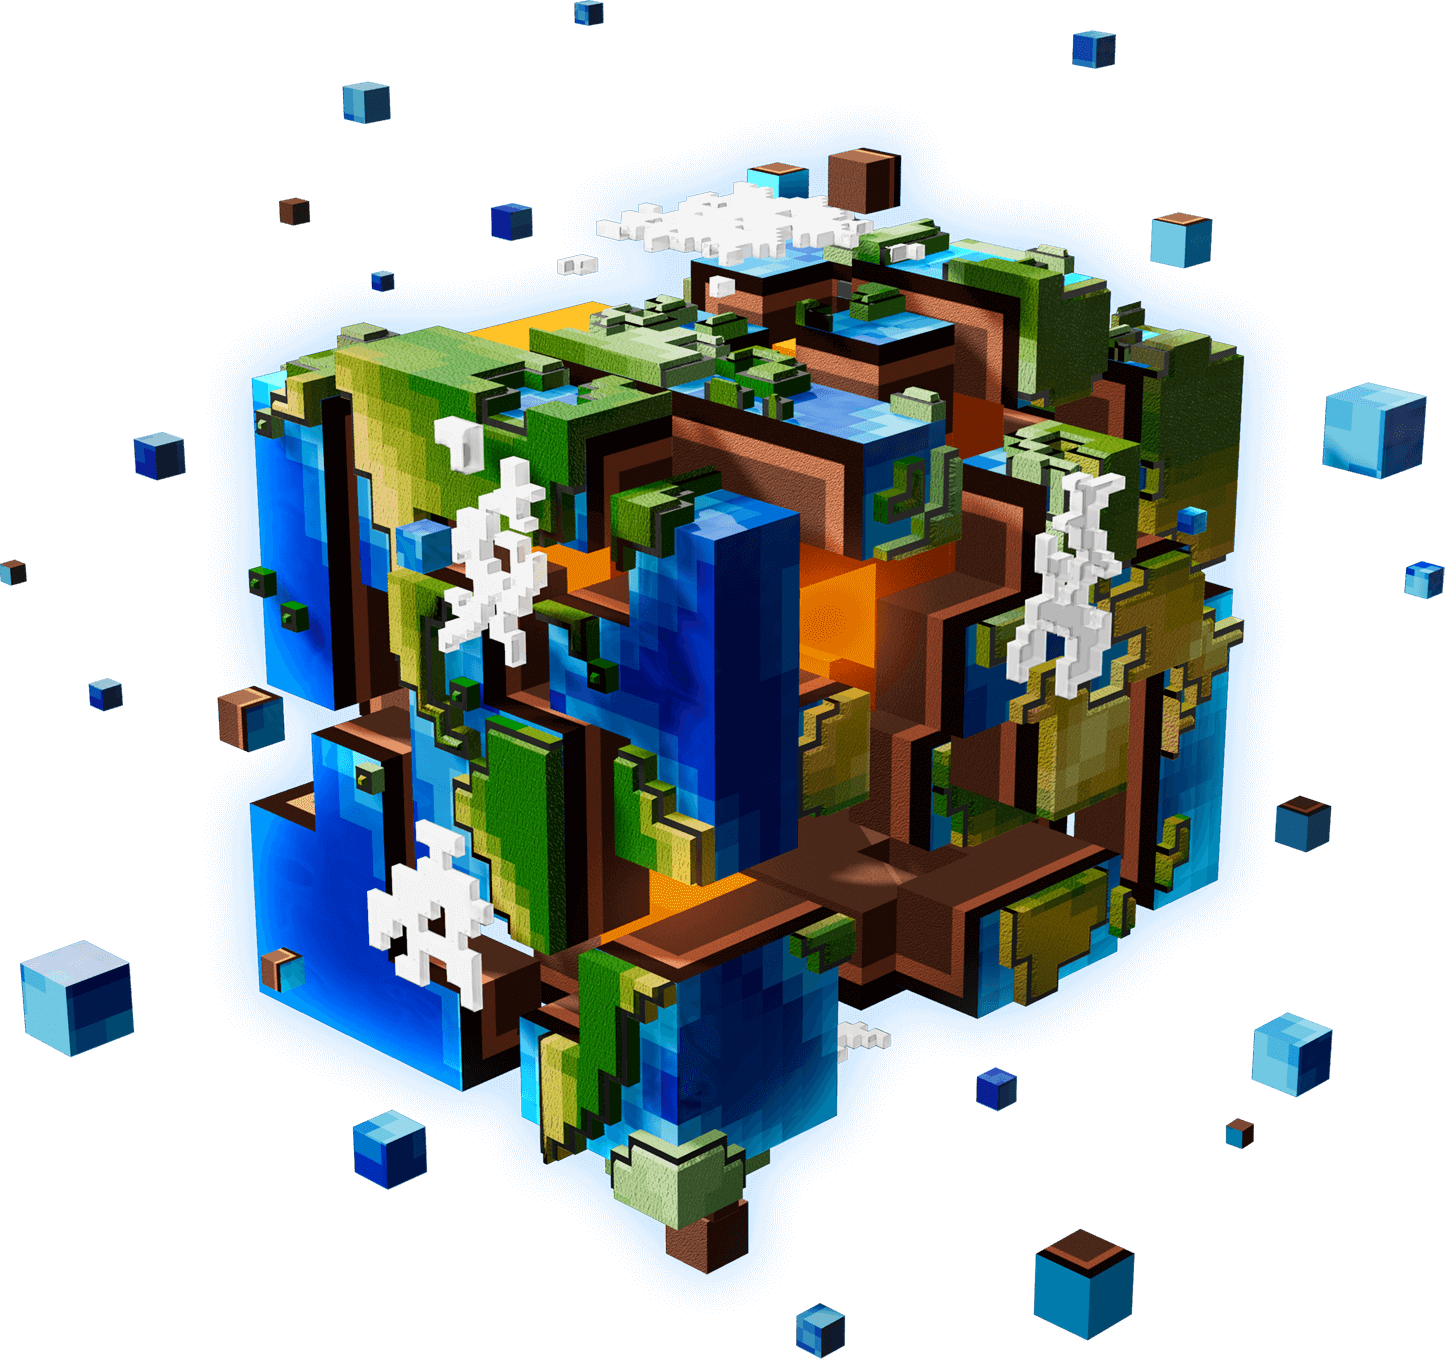 The voxel world of square Earth